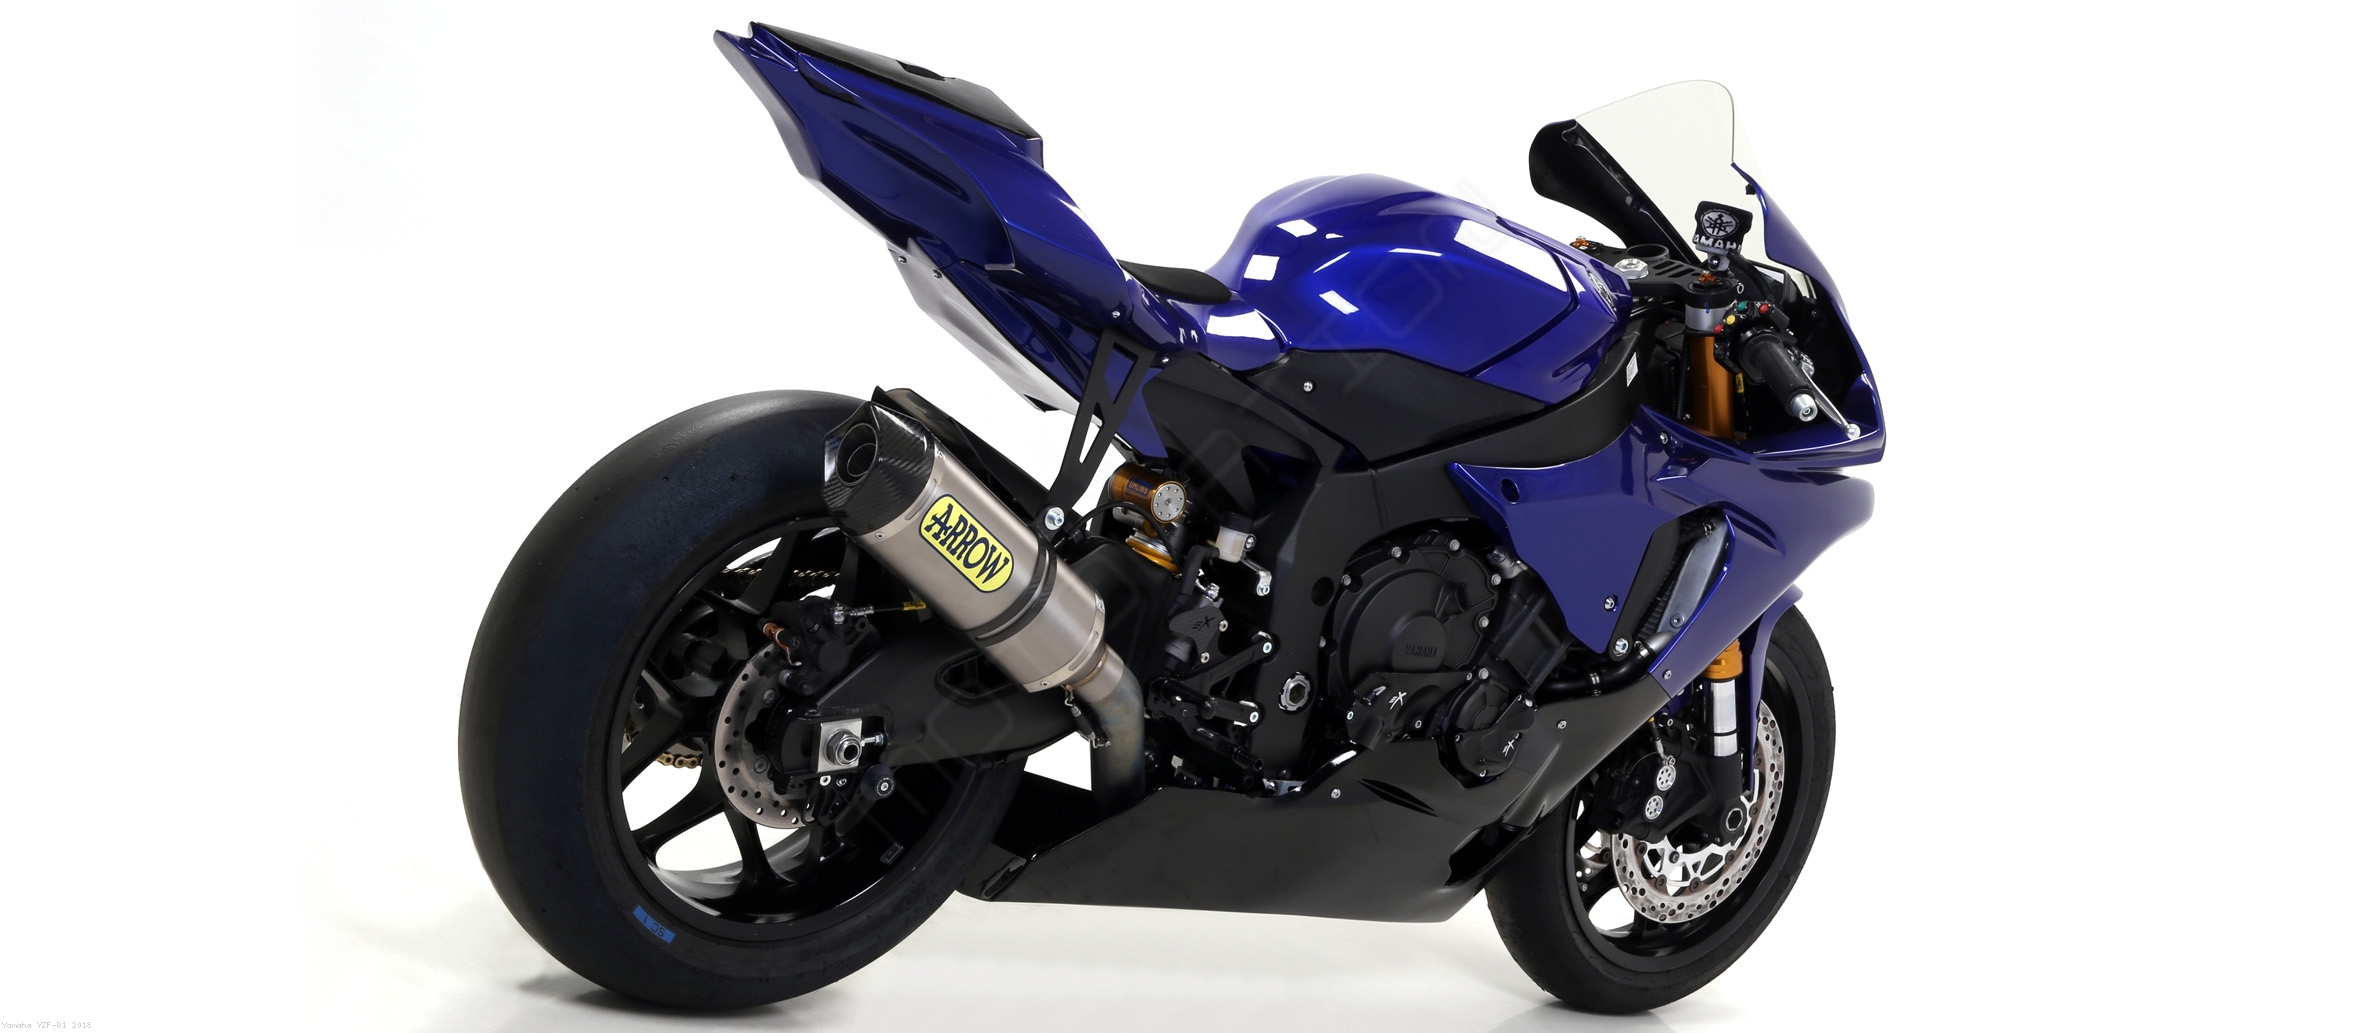 competition full exhaust system by arrow yamaha yzf r1 2018 71178ckz. Black Bedroom Furniture Sets. Home Design Ideas